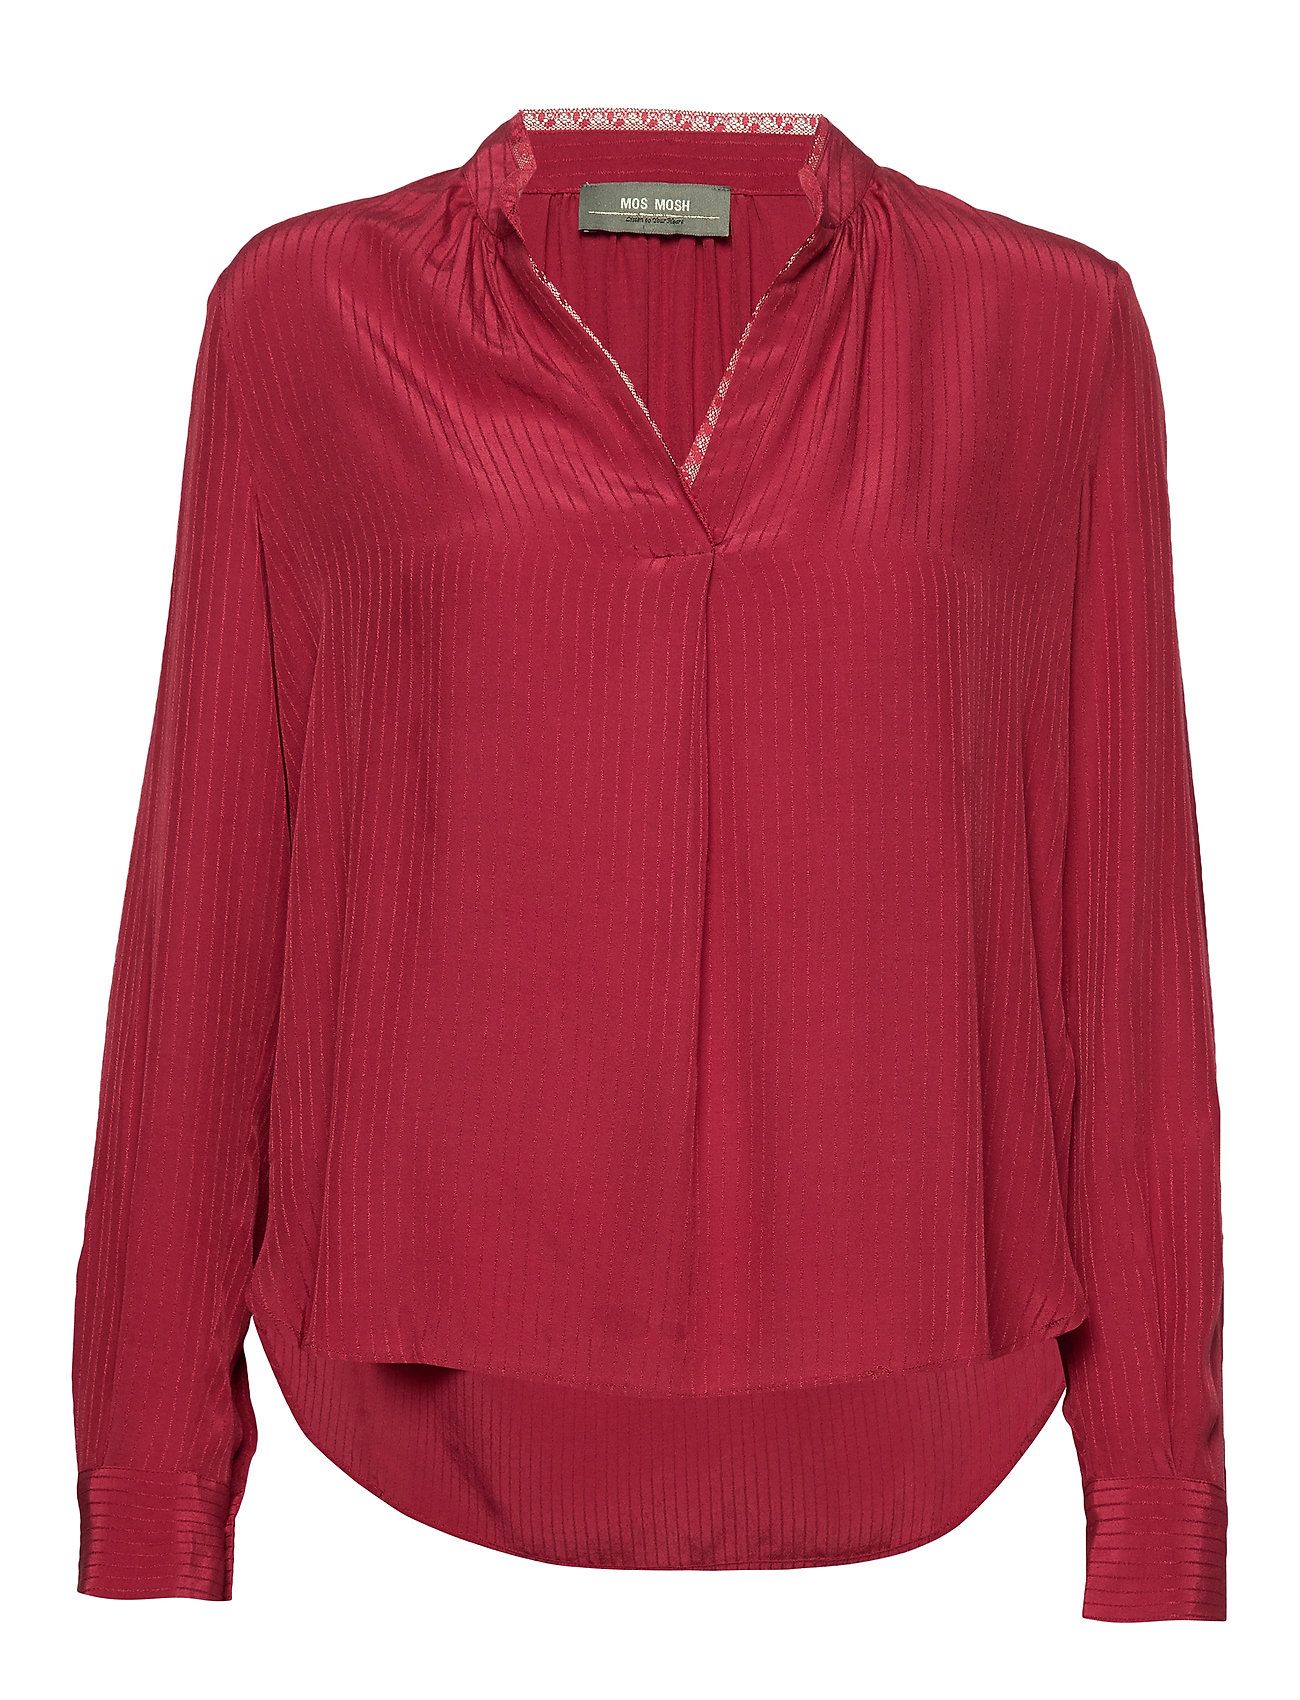 MOS MOSH Tarin Blouse - COURAGE RED